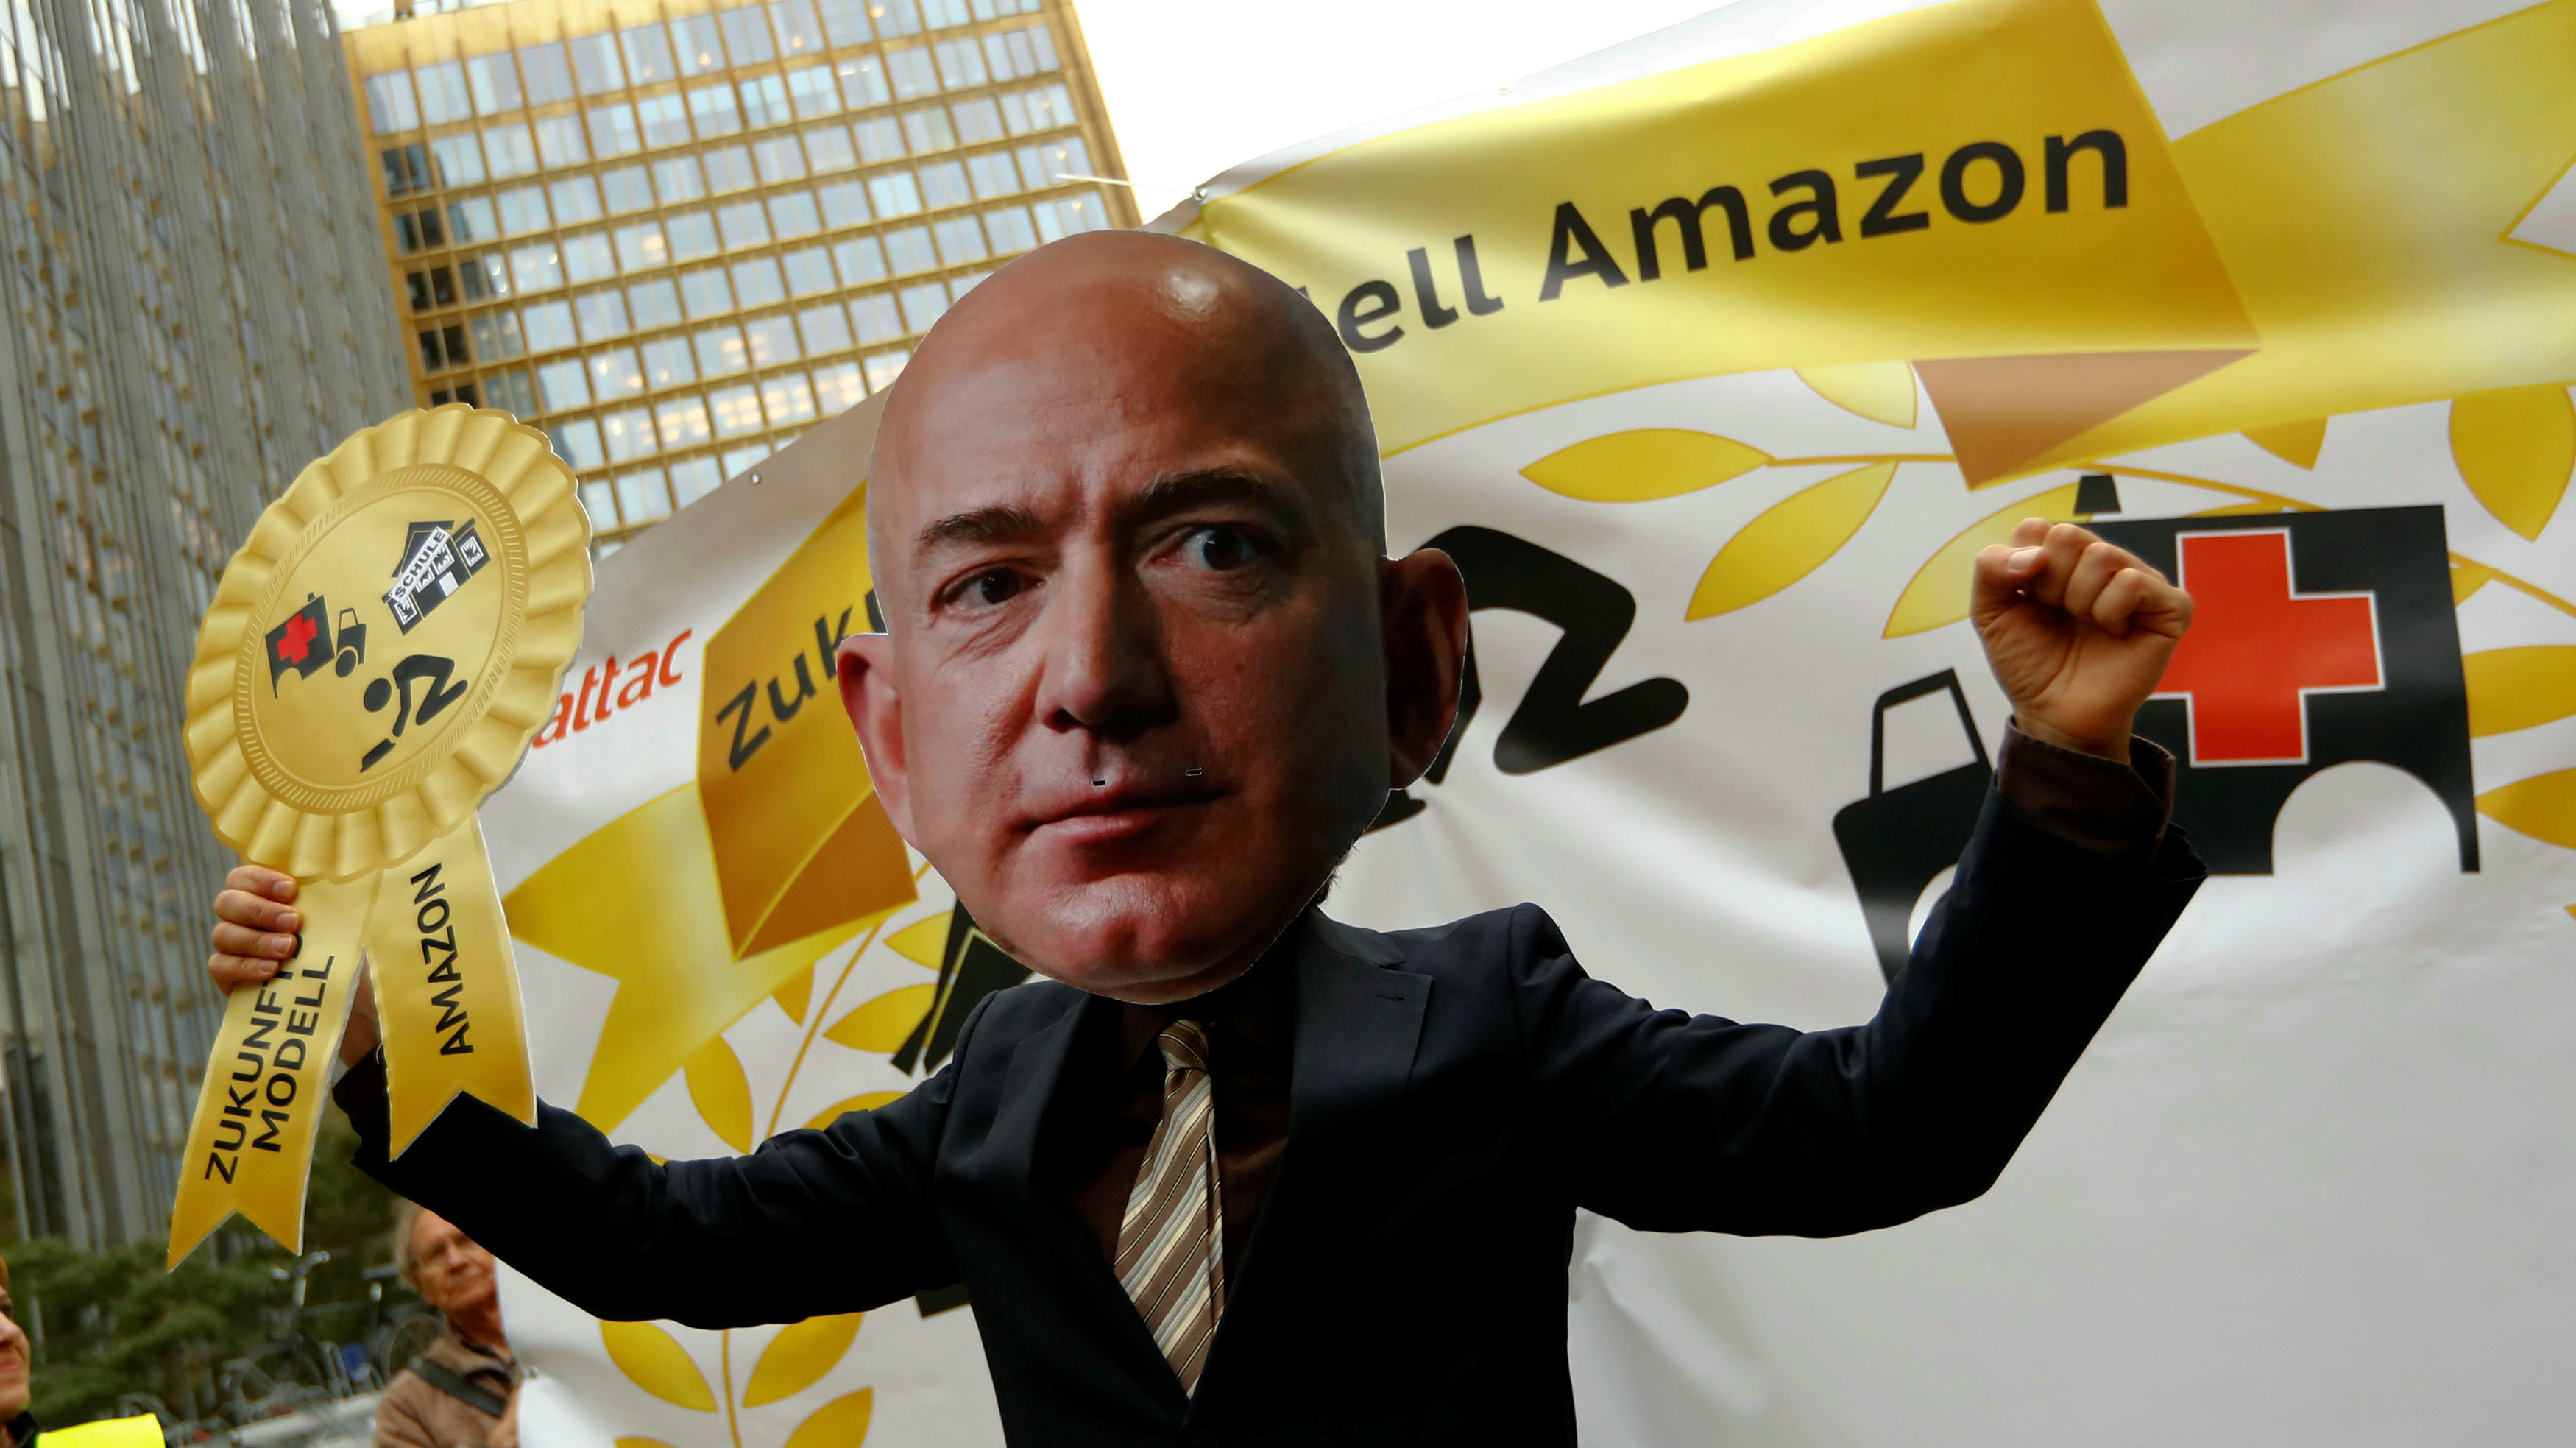 Amazon raising Prime prices again to $119 a year